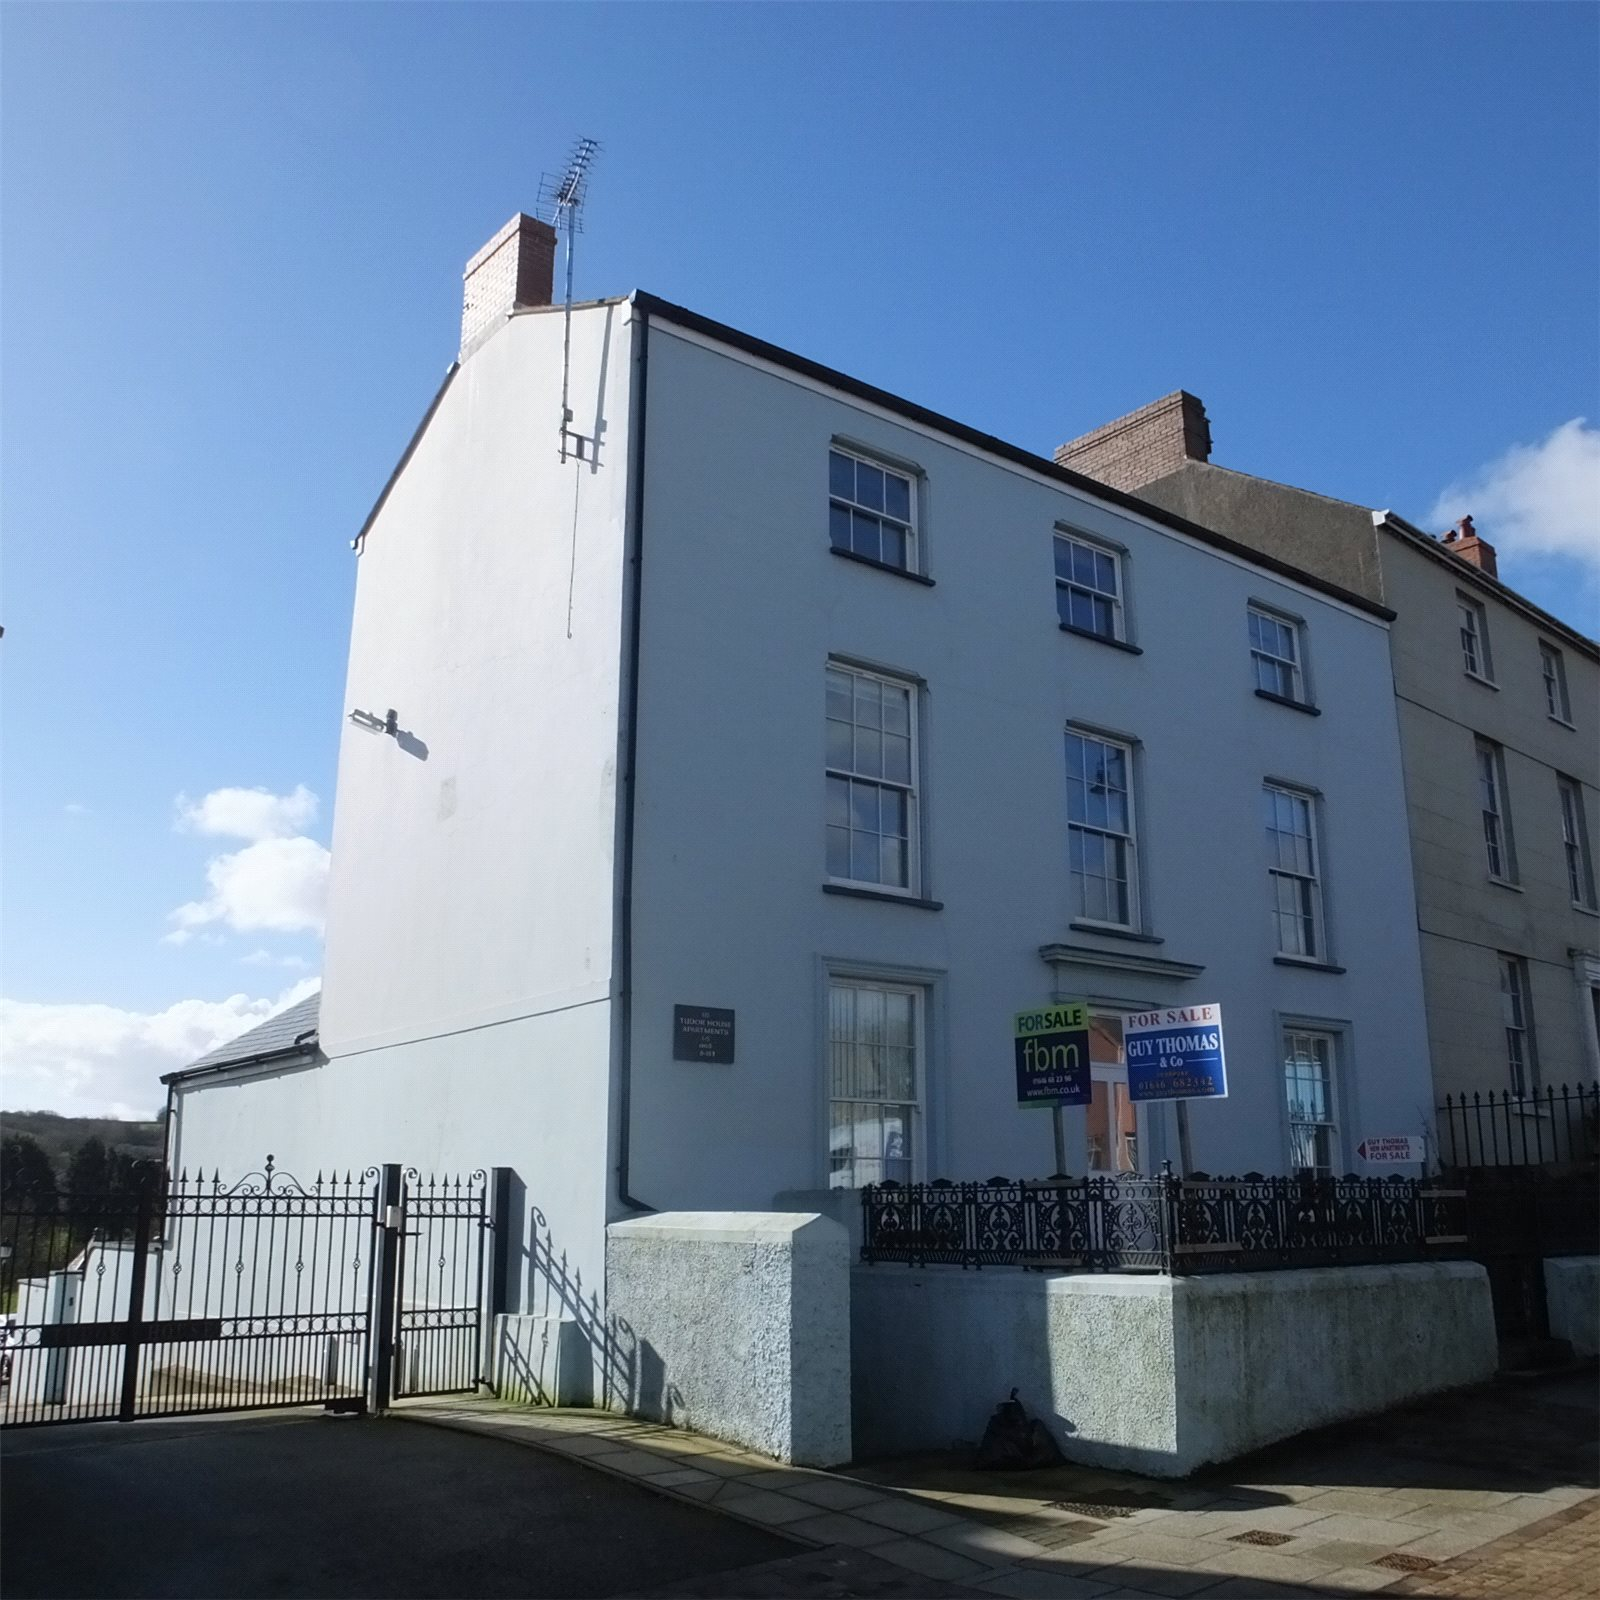 6 Bedrooms Flat for sale in Flats 2-5, Tudor House, 115 Main Street, Pembroke